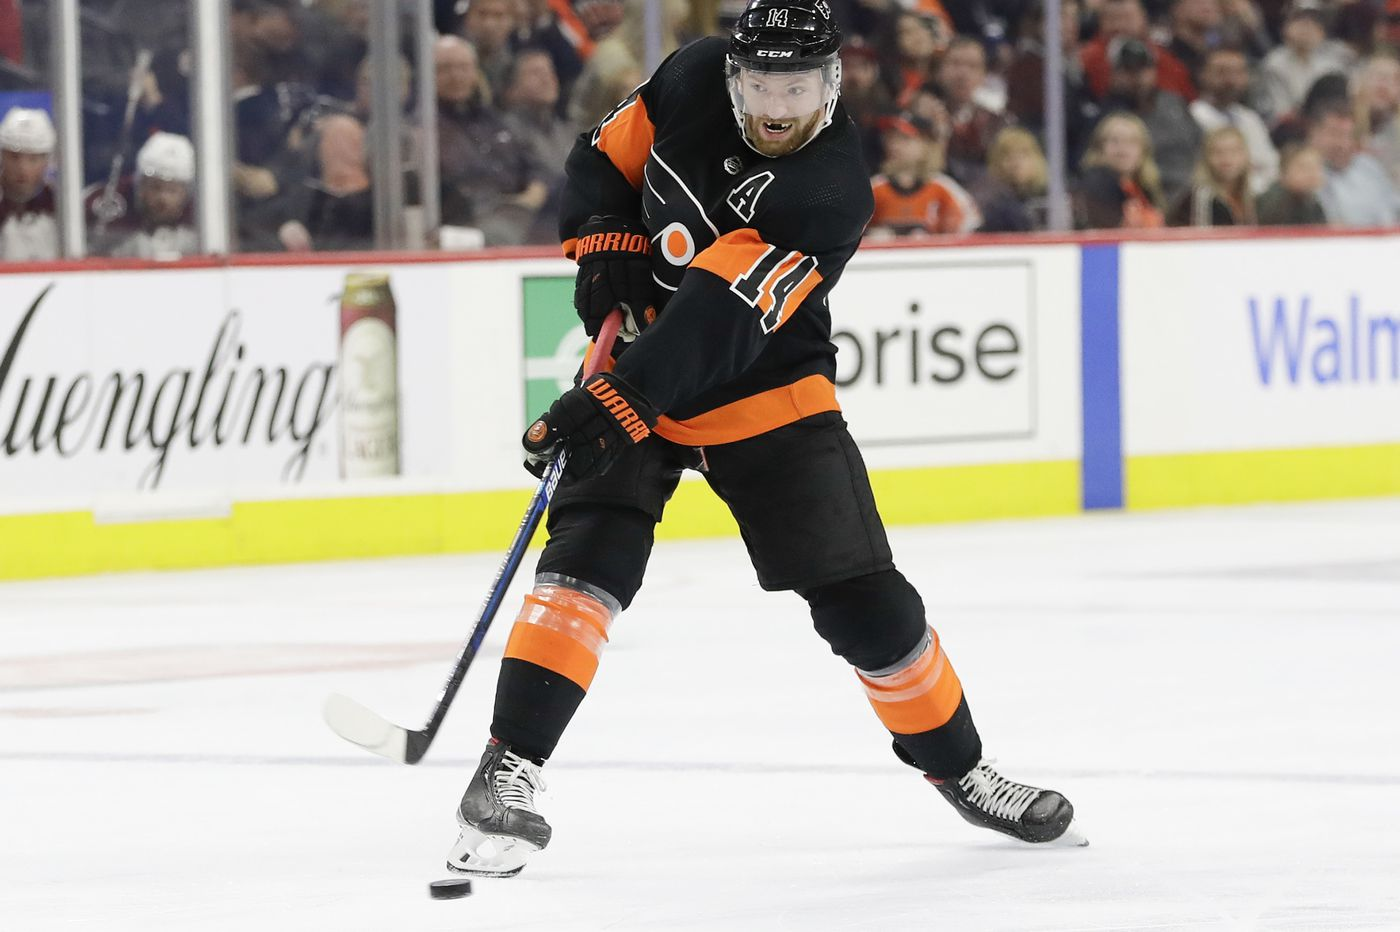 Sean Couturier's rise is the reason to think the Flyers can win the Stanley Cup | Mike Sielski